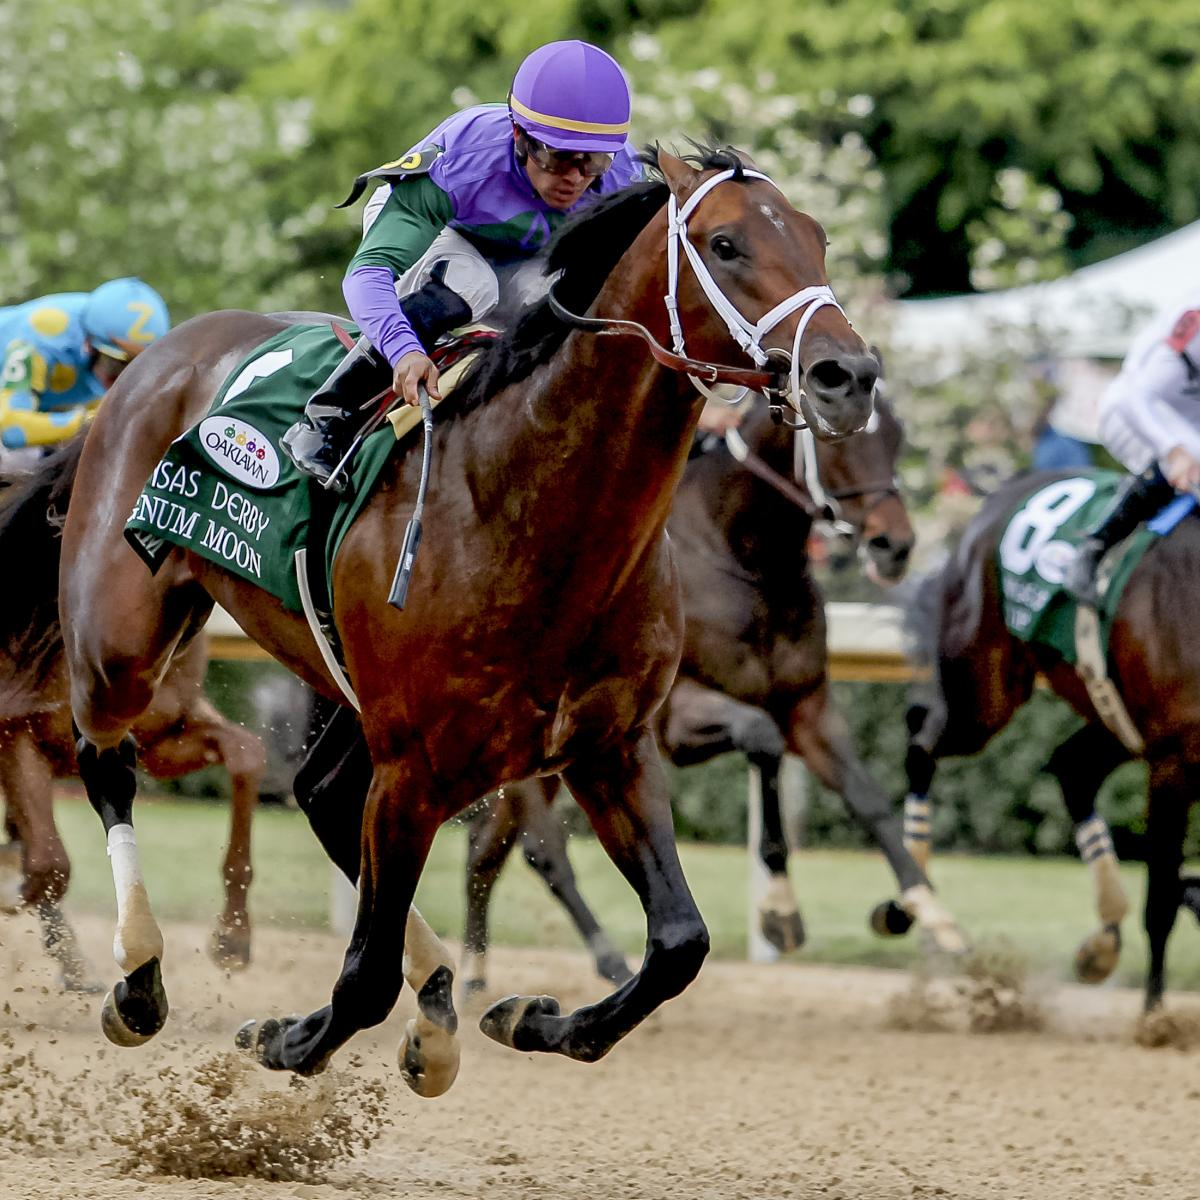 What Time Is It On What Tv: Kentucky Derby 2018: Post Time, TV Schedule And Live